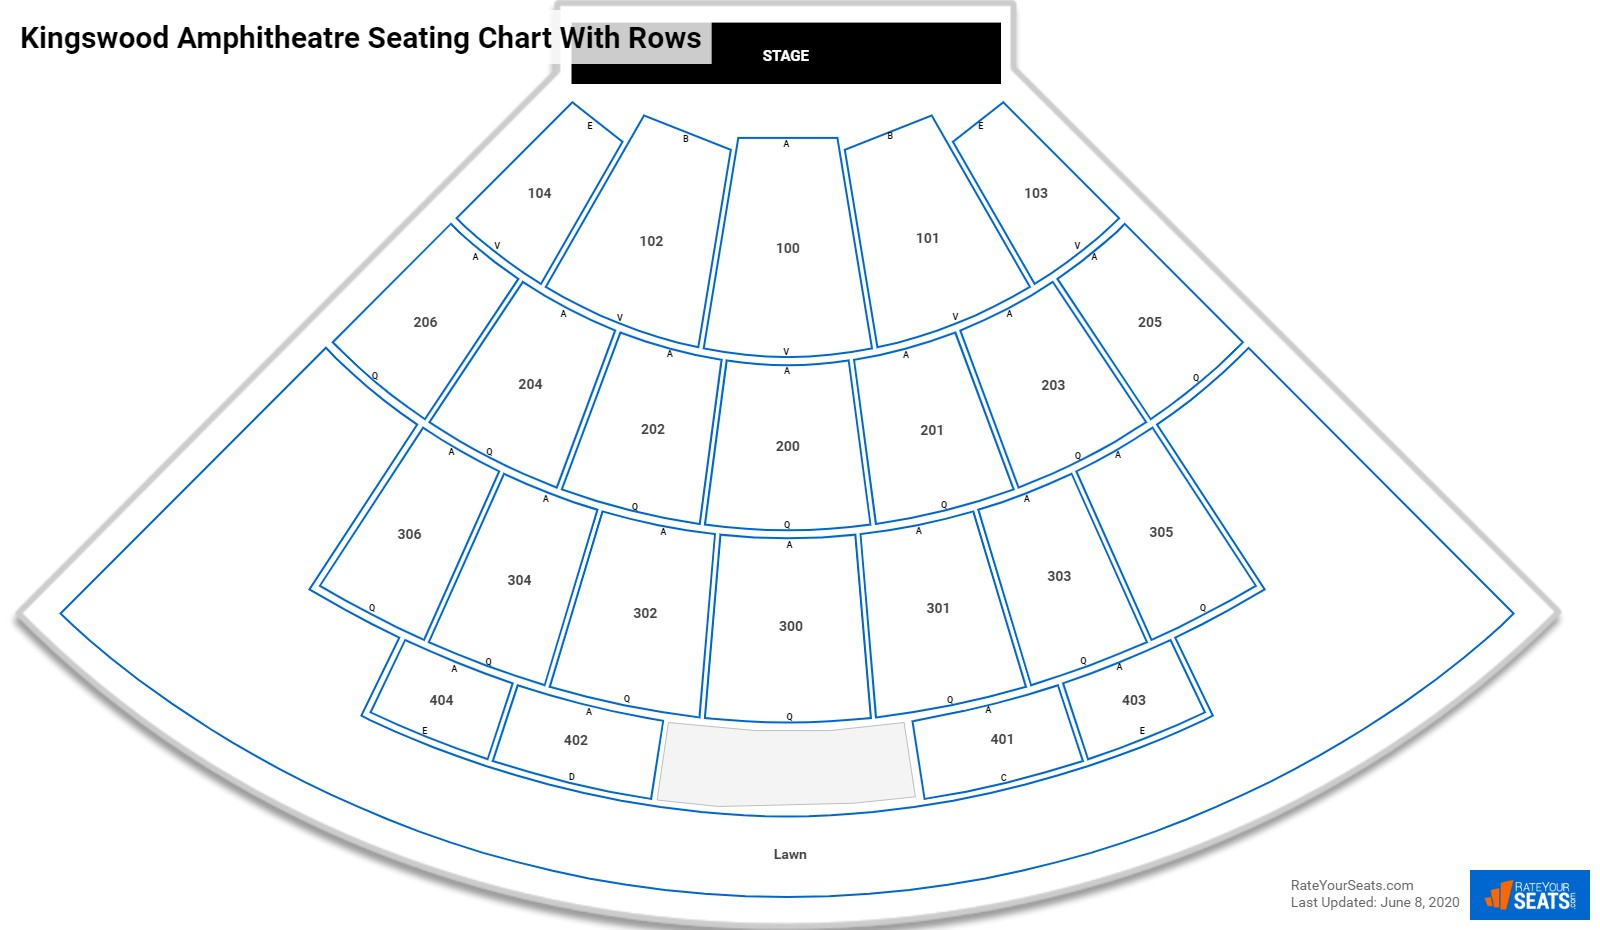 Kingswood Amphitheatre seating chart with rows